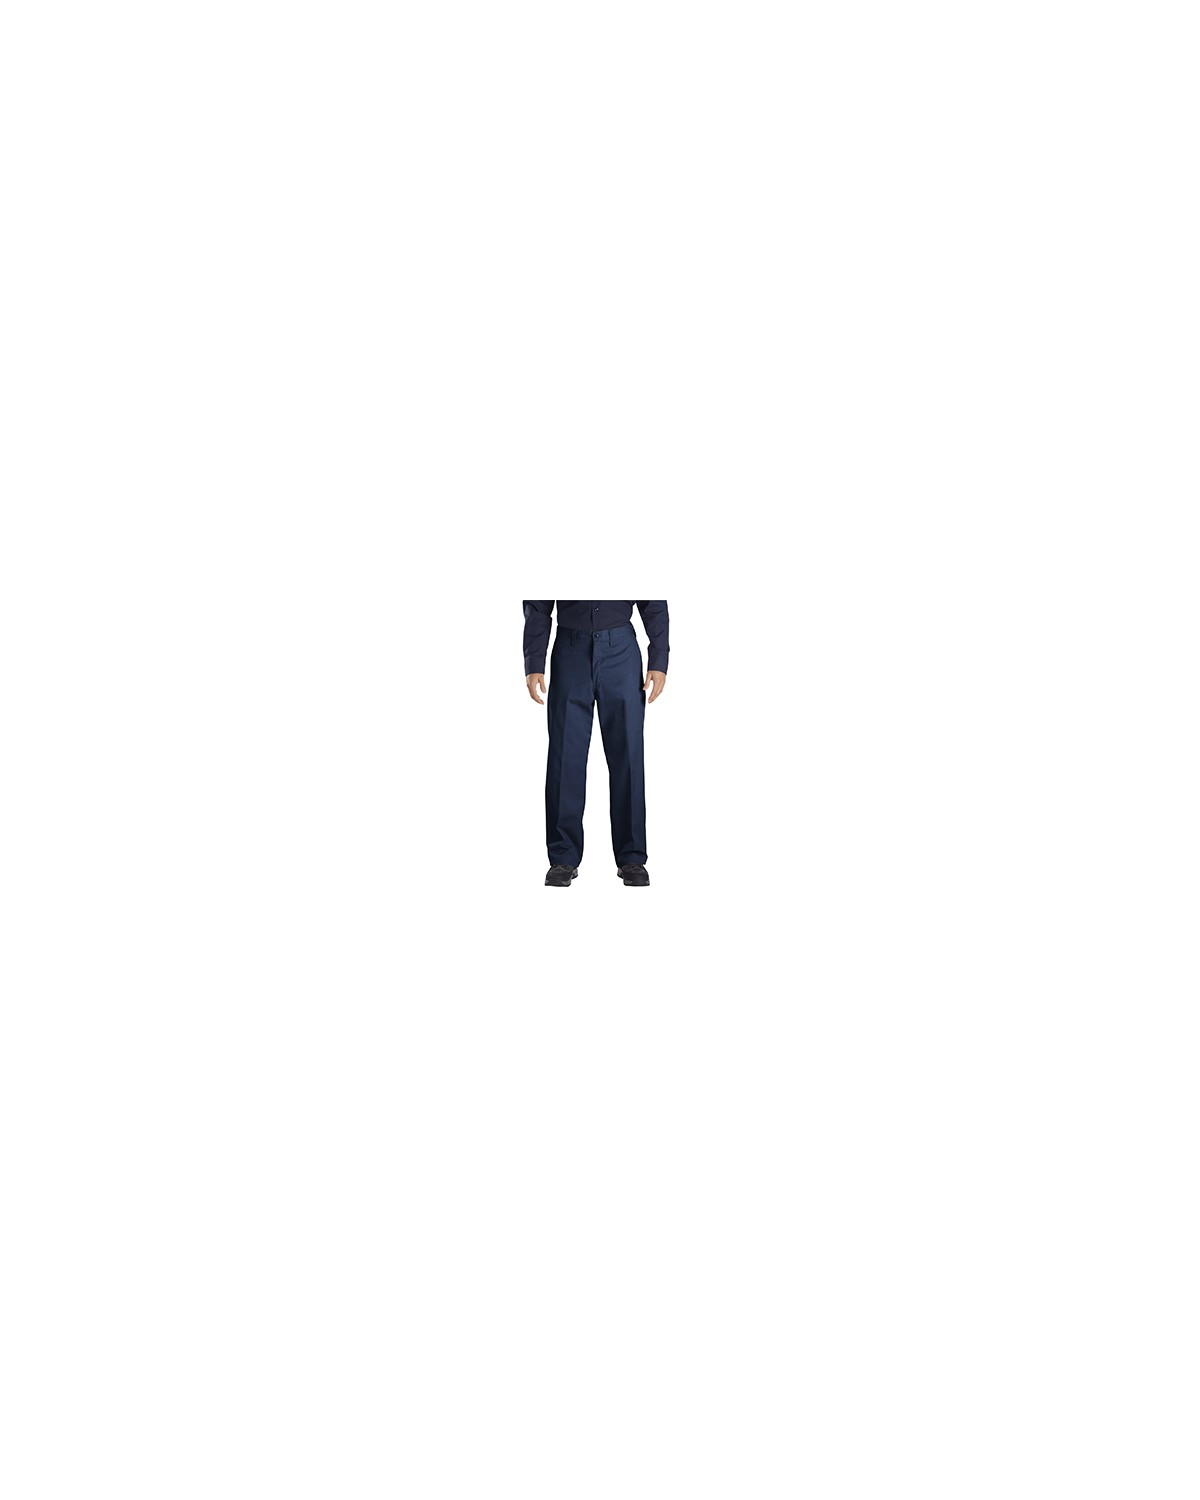 LP812 Dickies DARK NAVY 35